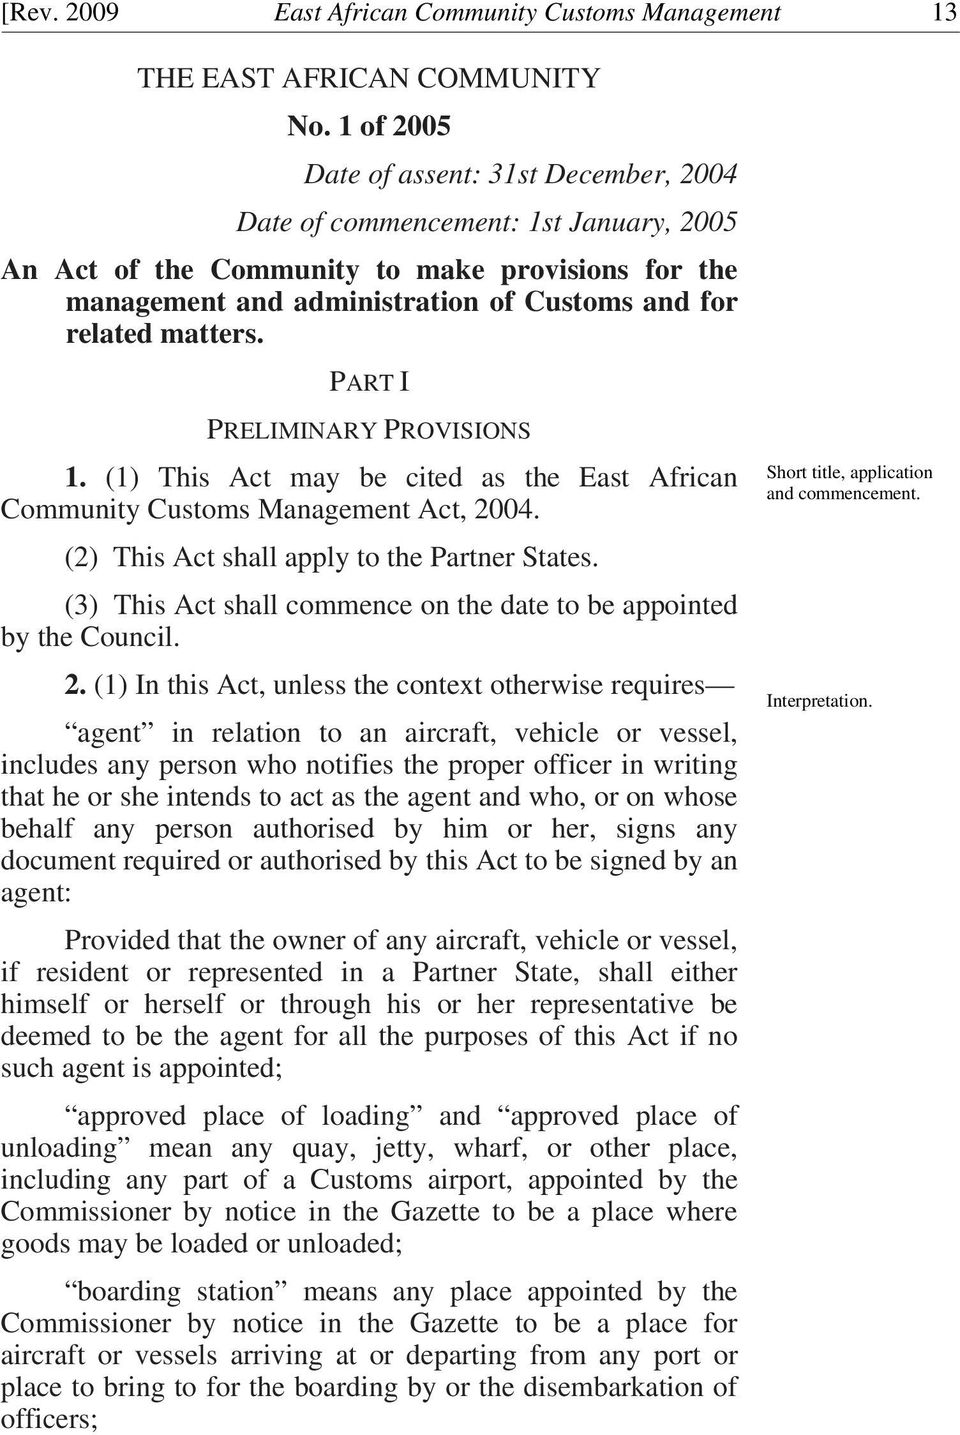 matters. PART I PRELIMINARY PROVISIONS 1. (1) This Act may be cited as the East African Community Customs Management Act, 2004. (2) This A ct shall apply to the Partner States.